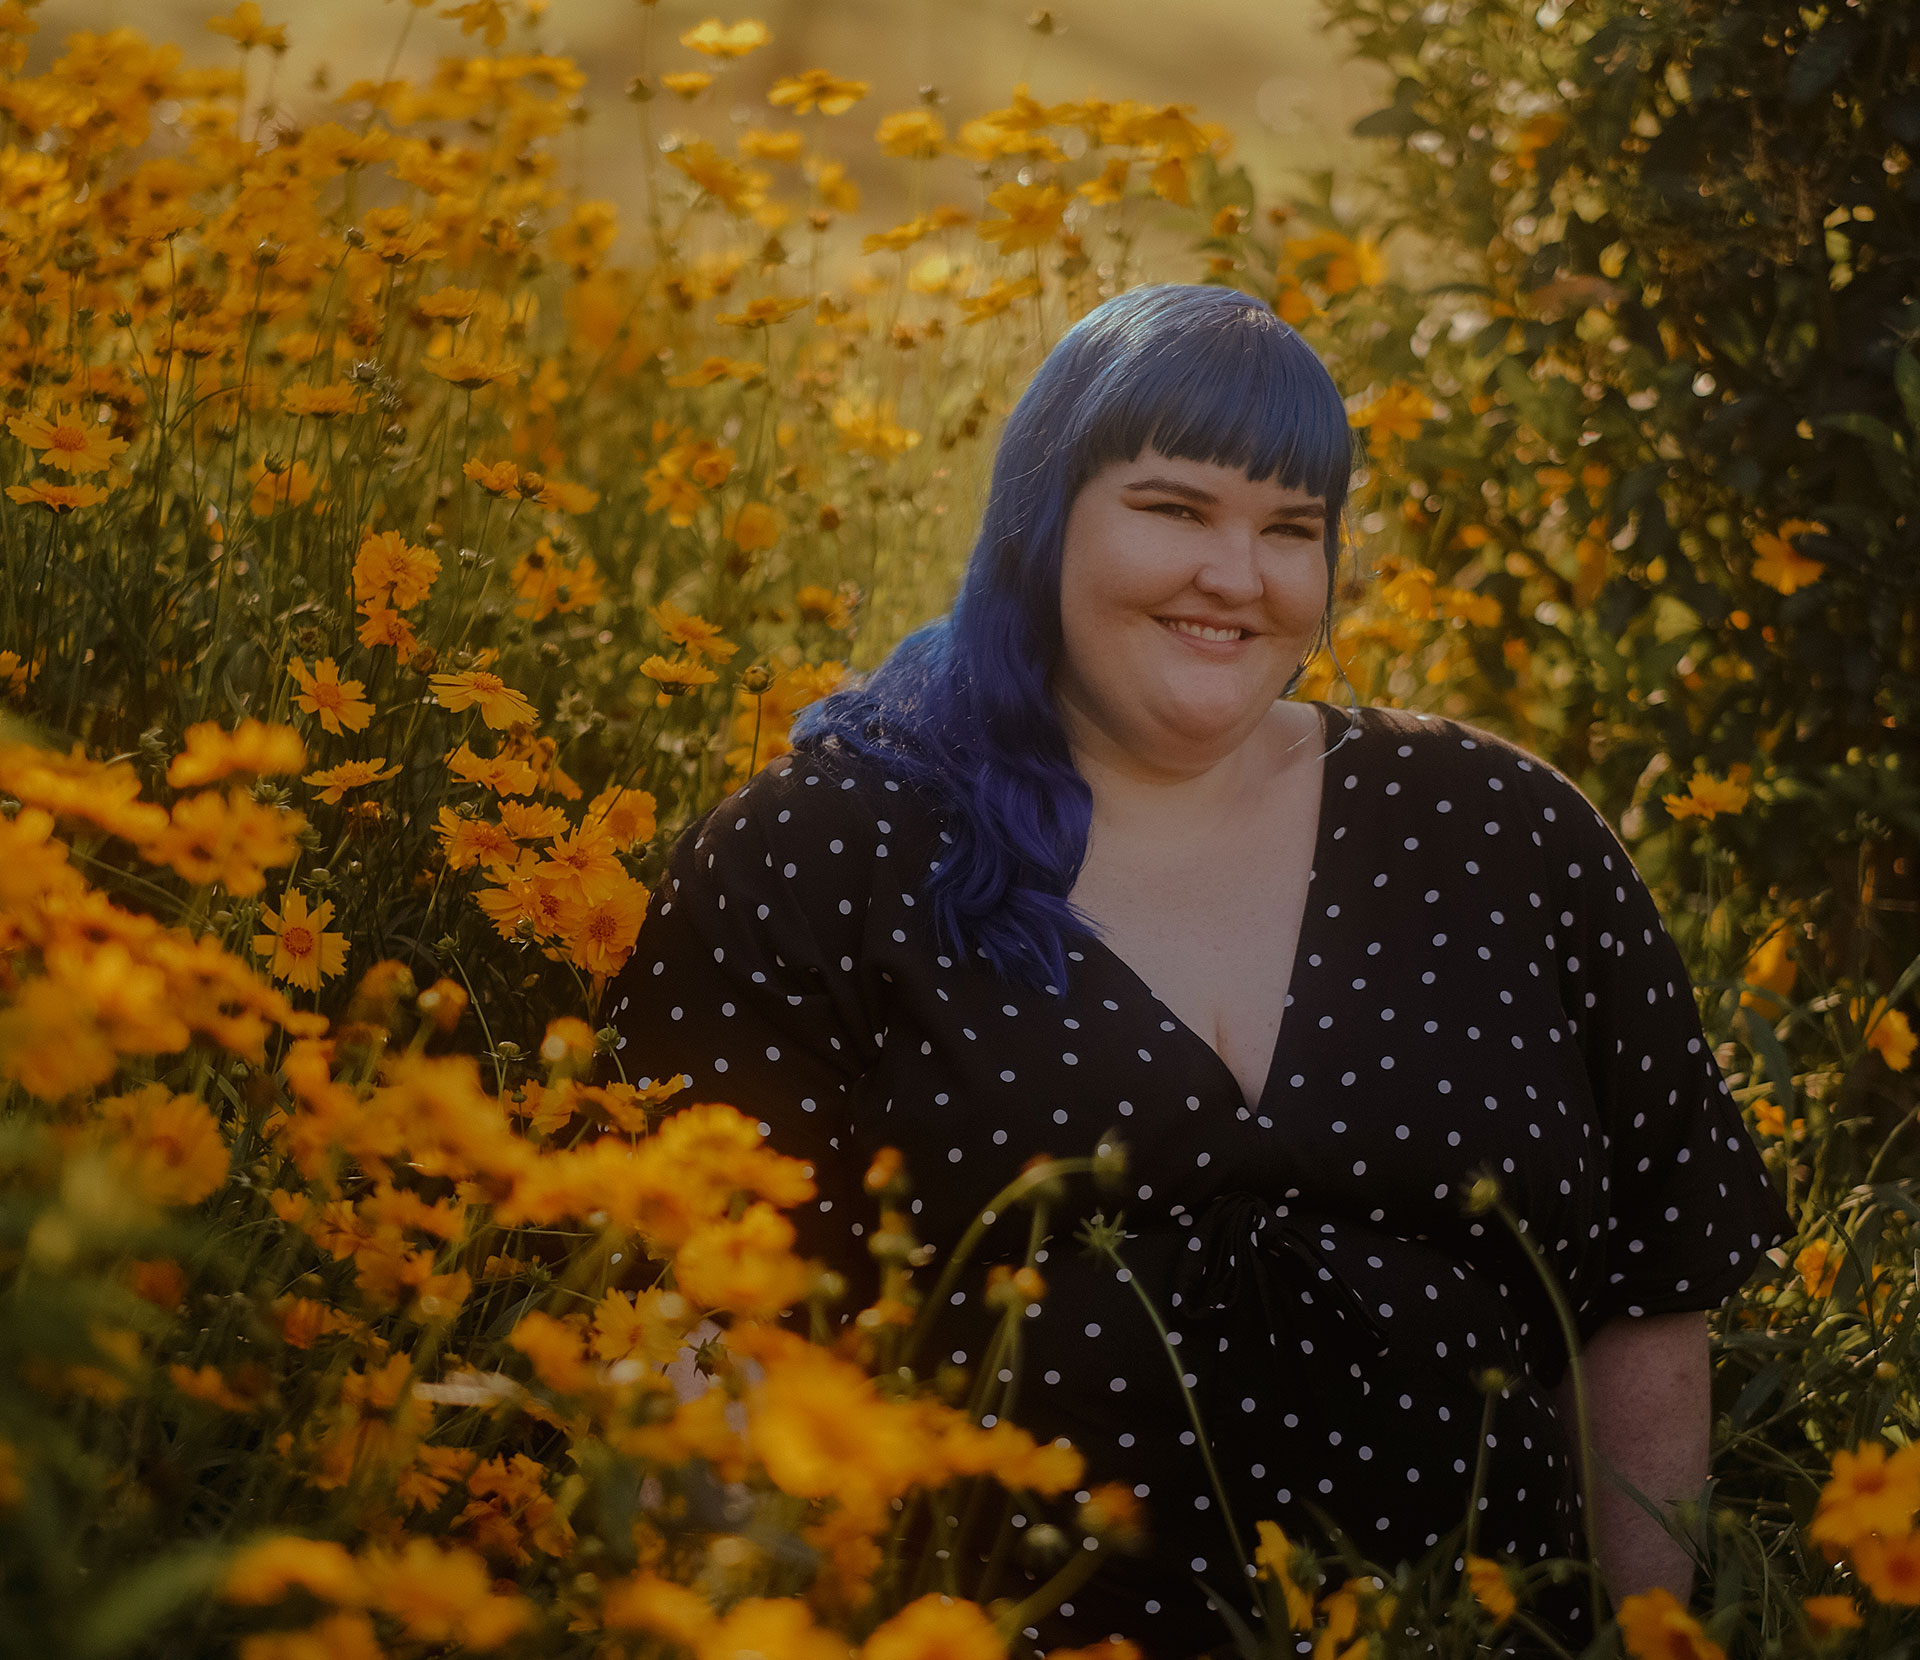 A plus sized woman with blue hair and a black dress with spots stands smiling in a field of yellow flowers